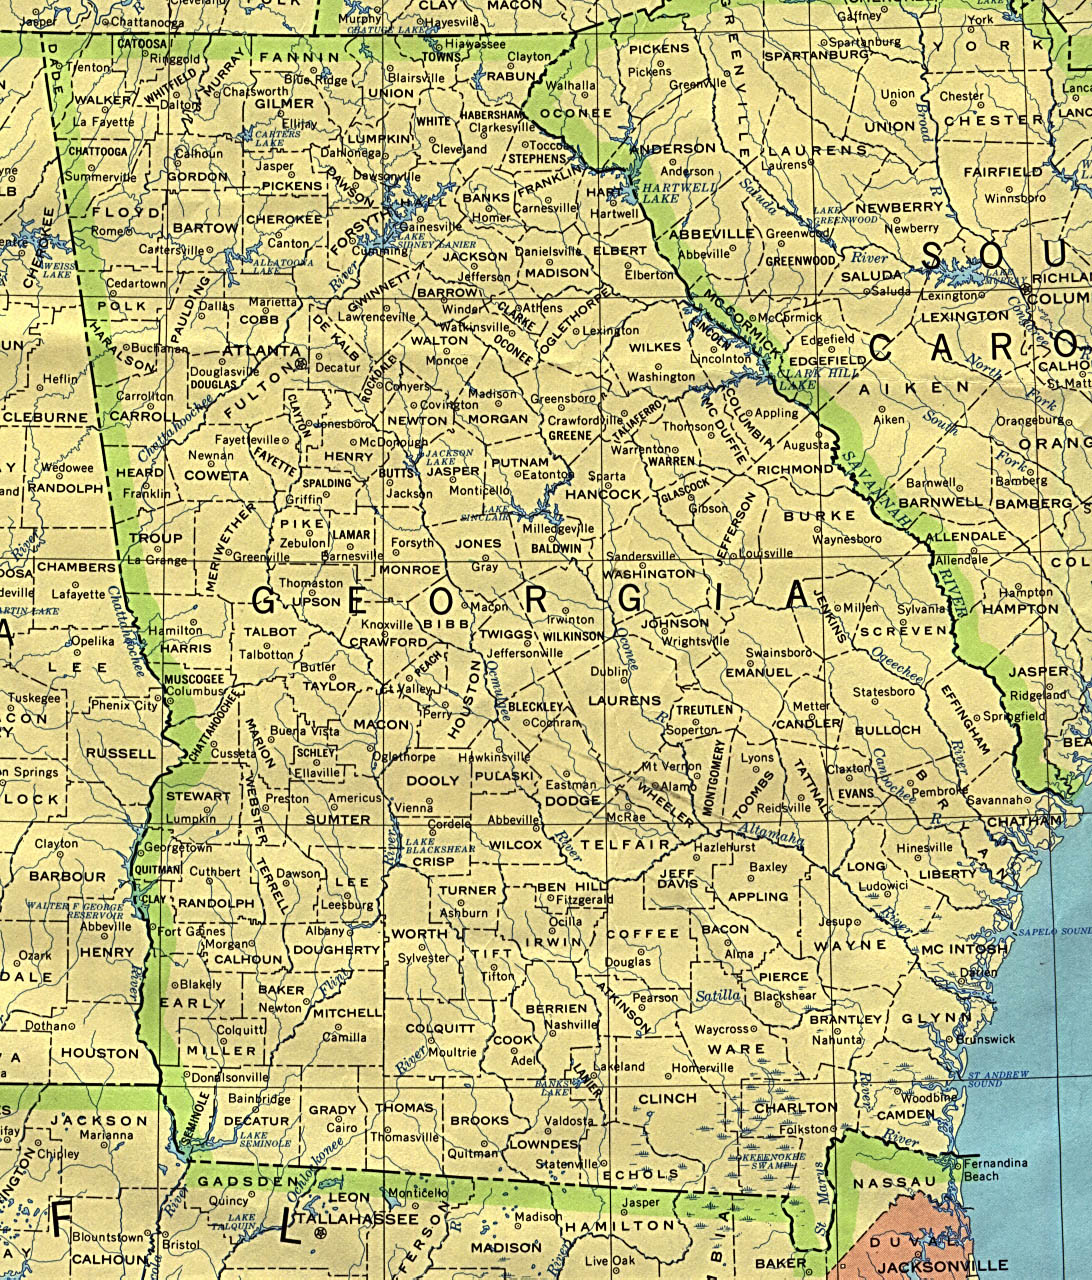 Map Of Georgia United States.Georgia Outline Maps And Map Links